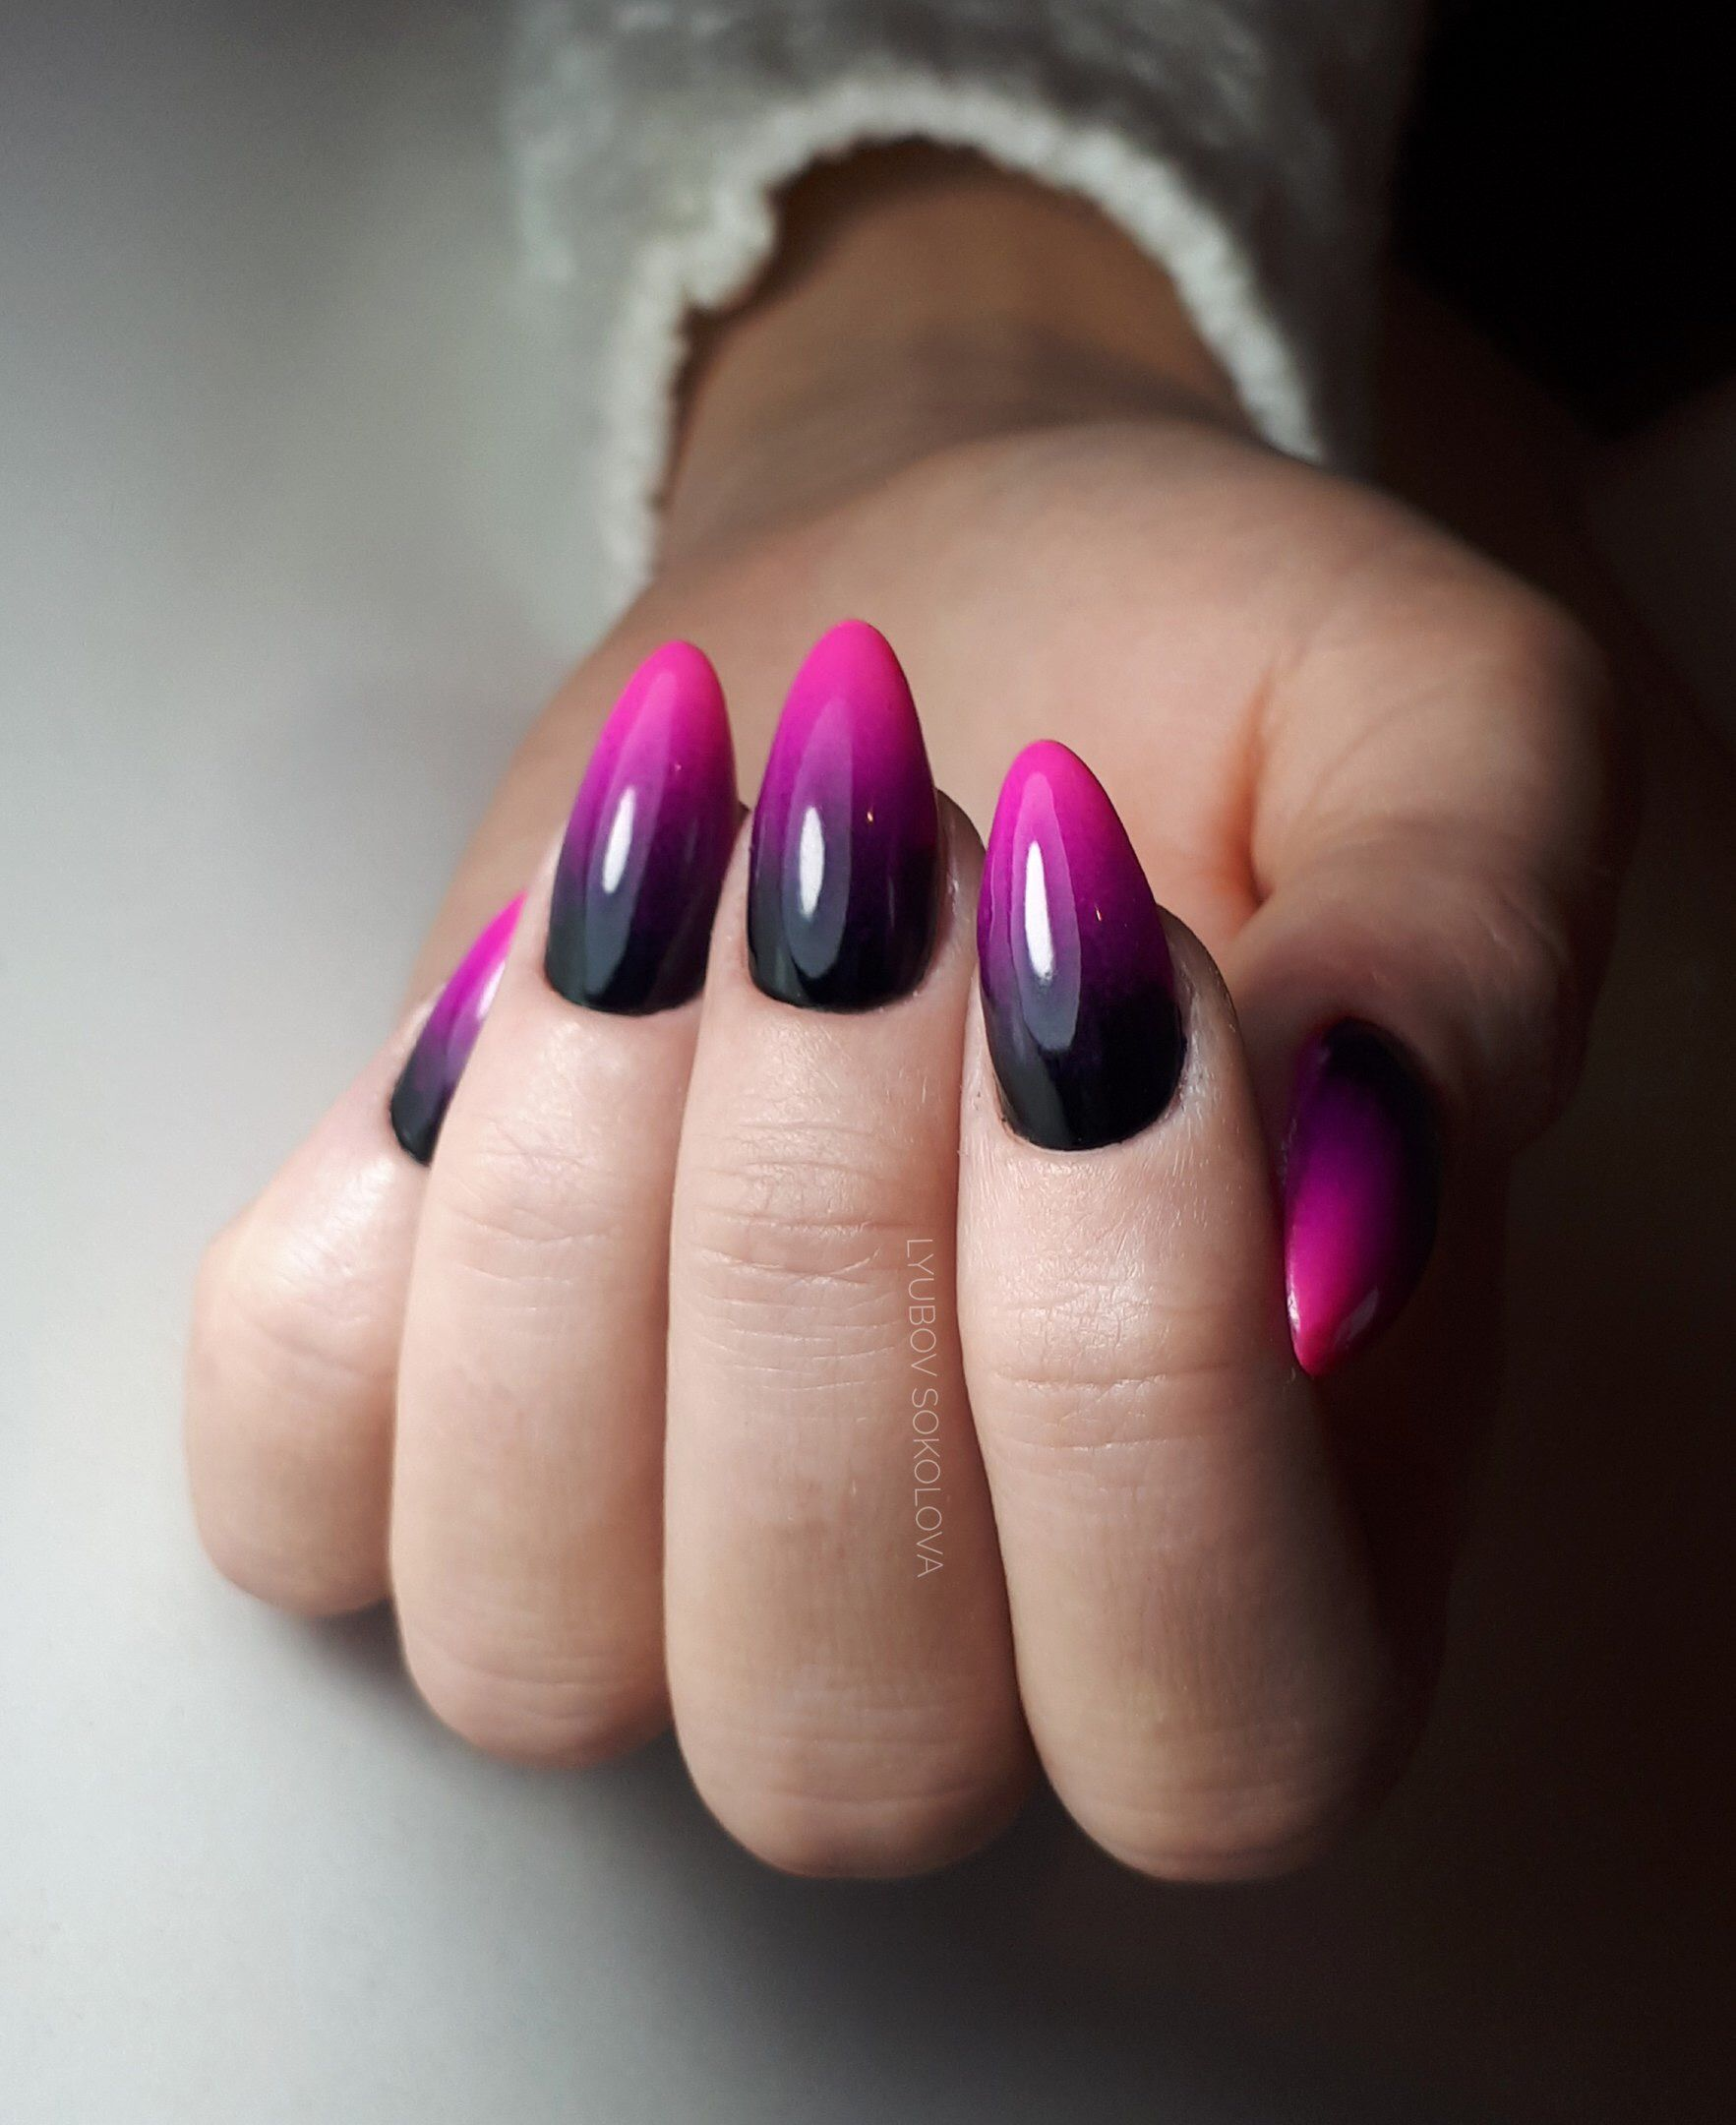 Pin by My Info on nails | Pinterest | Make up, Manicure and Nail ...